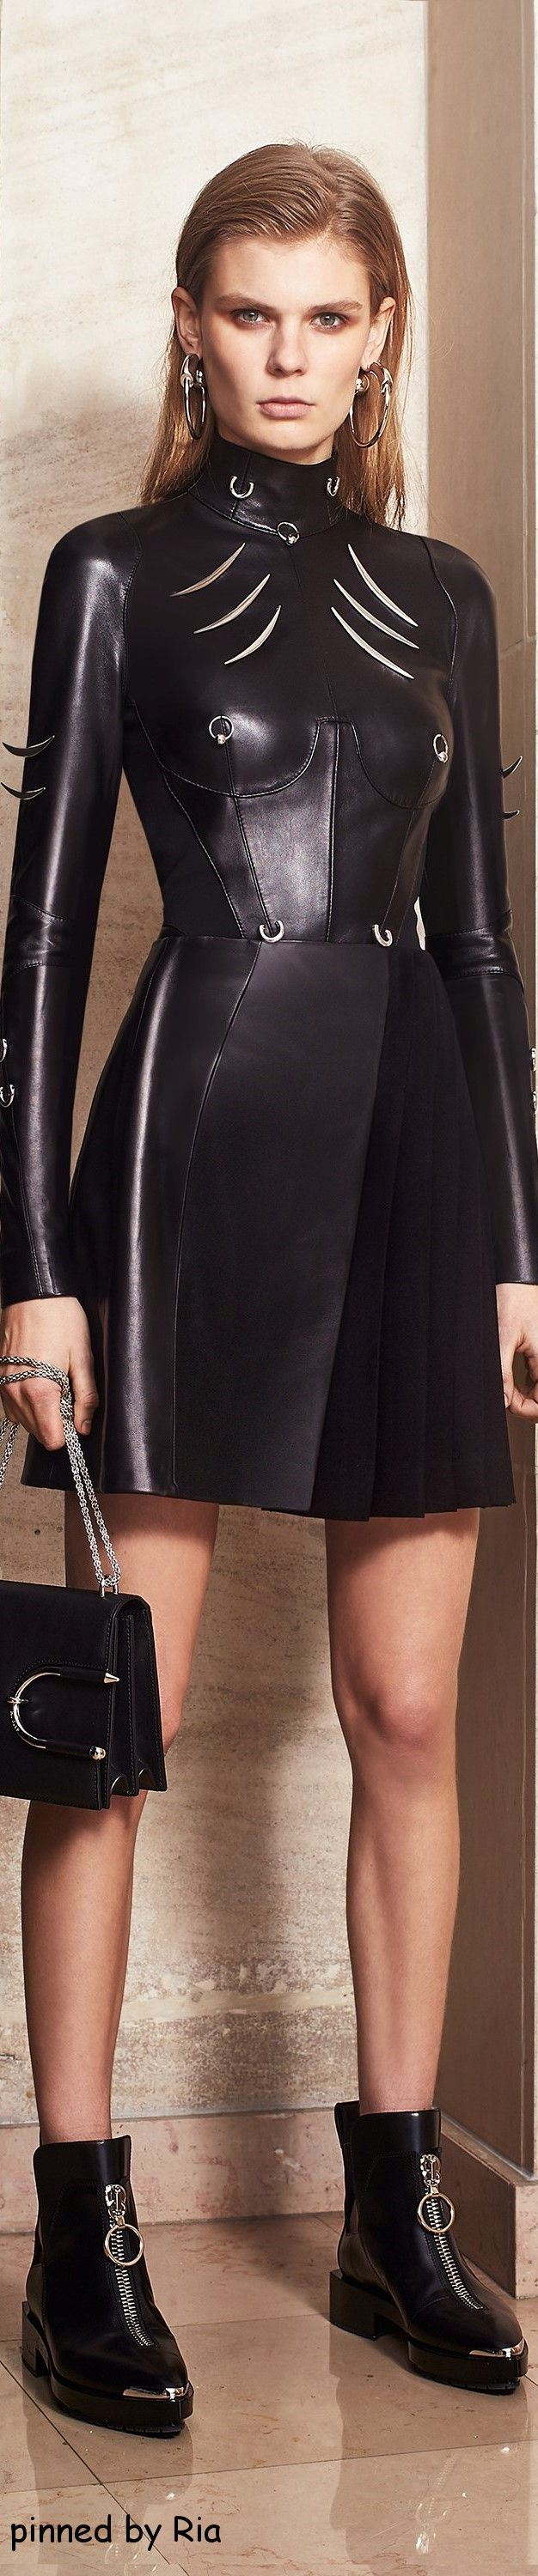 Mugler Pre Fall 2016  Not nipple pierced clothes :(